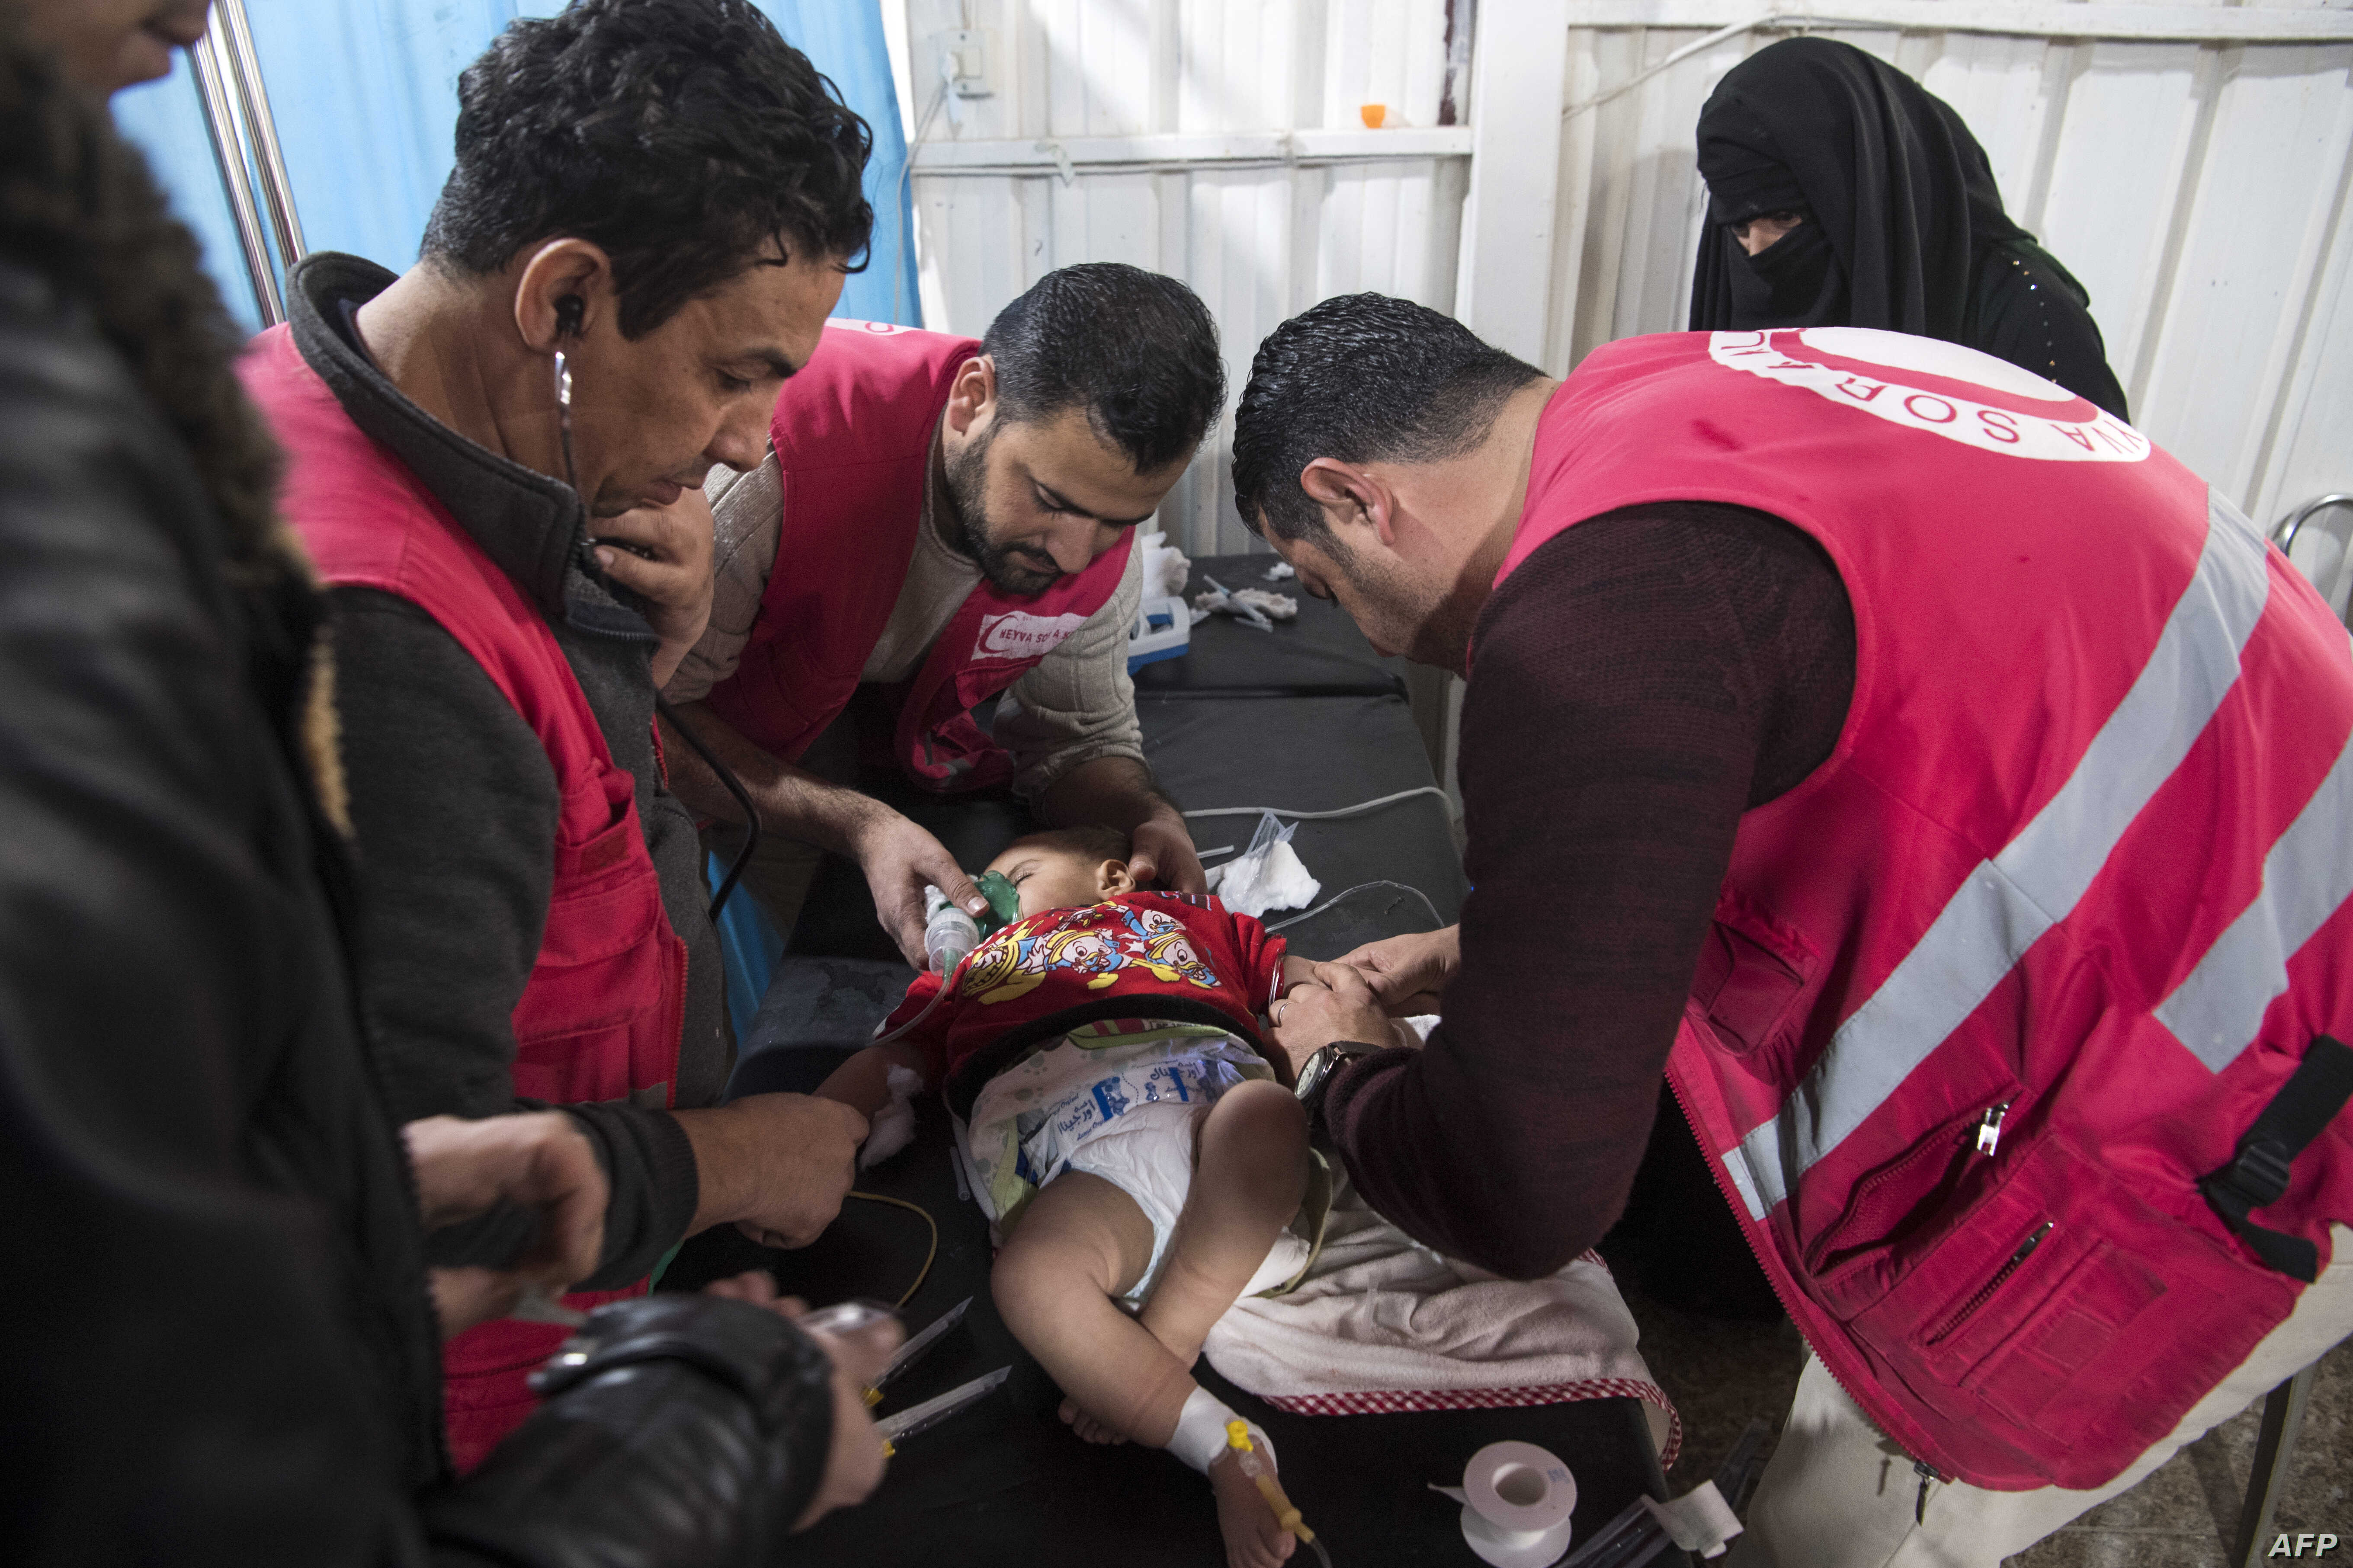 Syrian medics treat a baby at a makeshift clinic at the internally displaced persons camp of al-Hol in al-Hasakahgovernorate in northeastern Syria, Feb. 6, 2019.